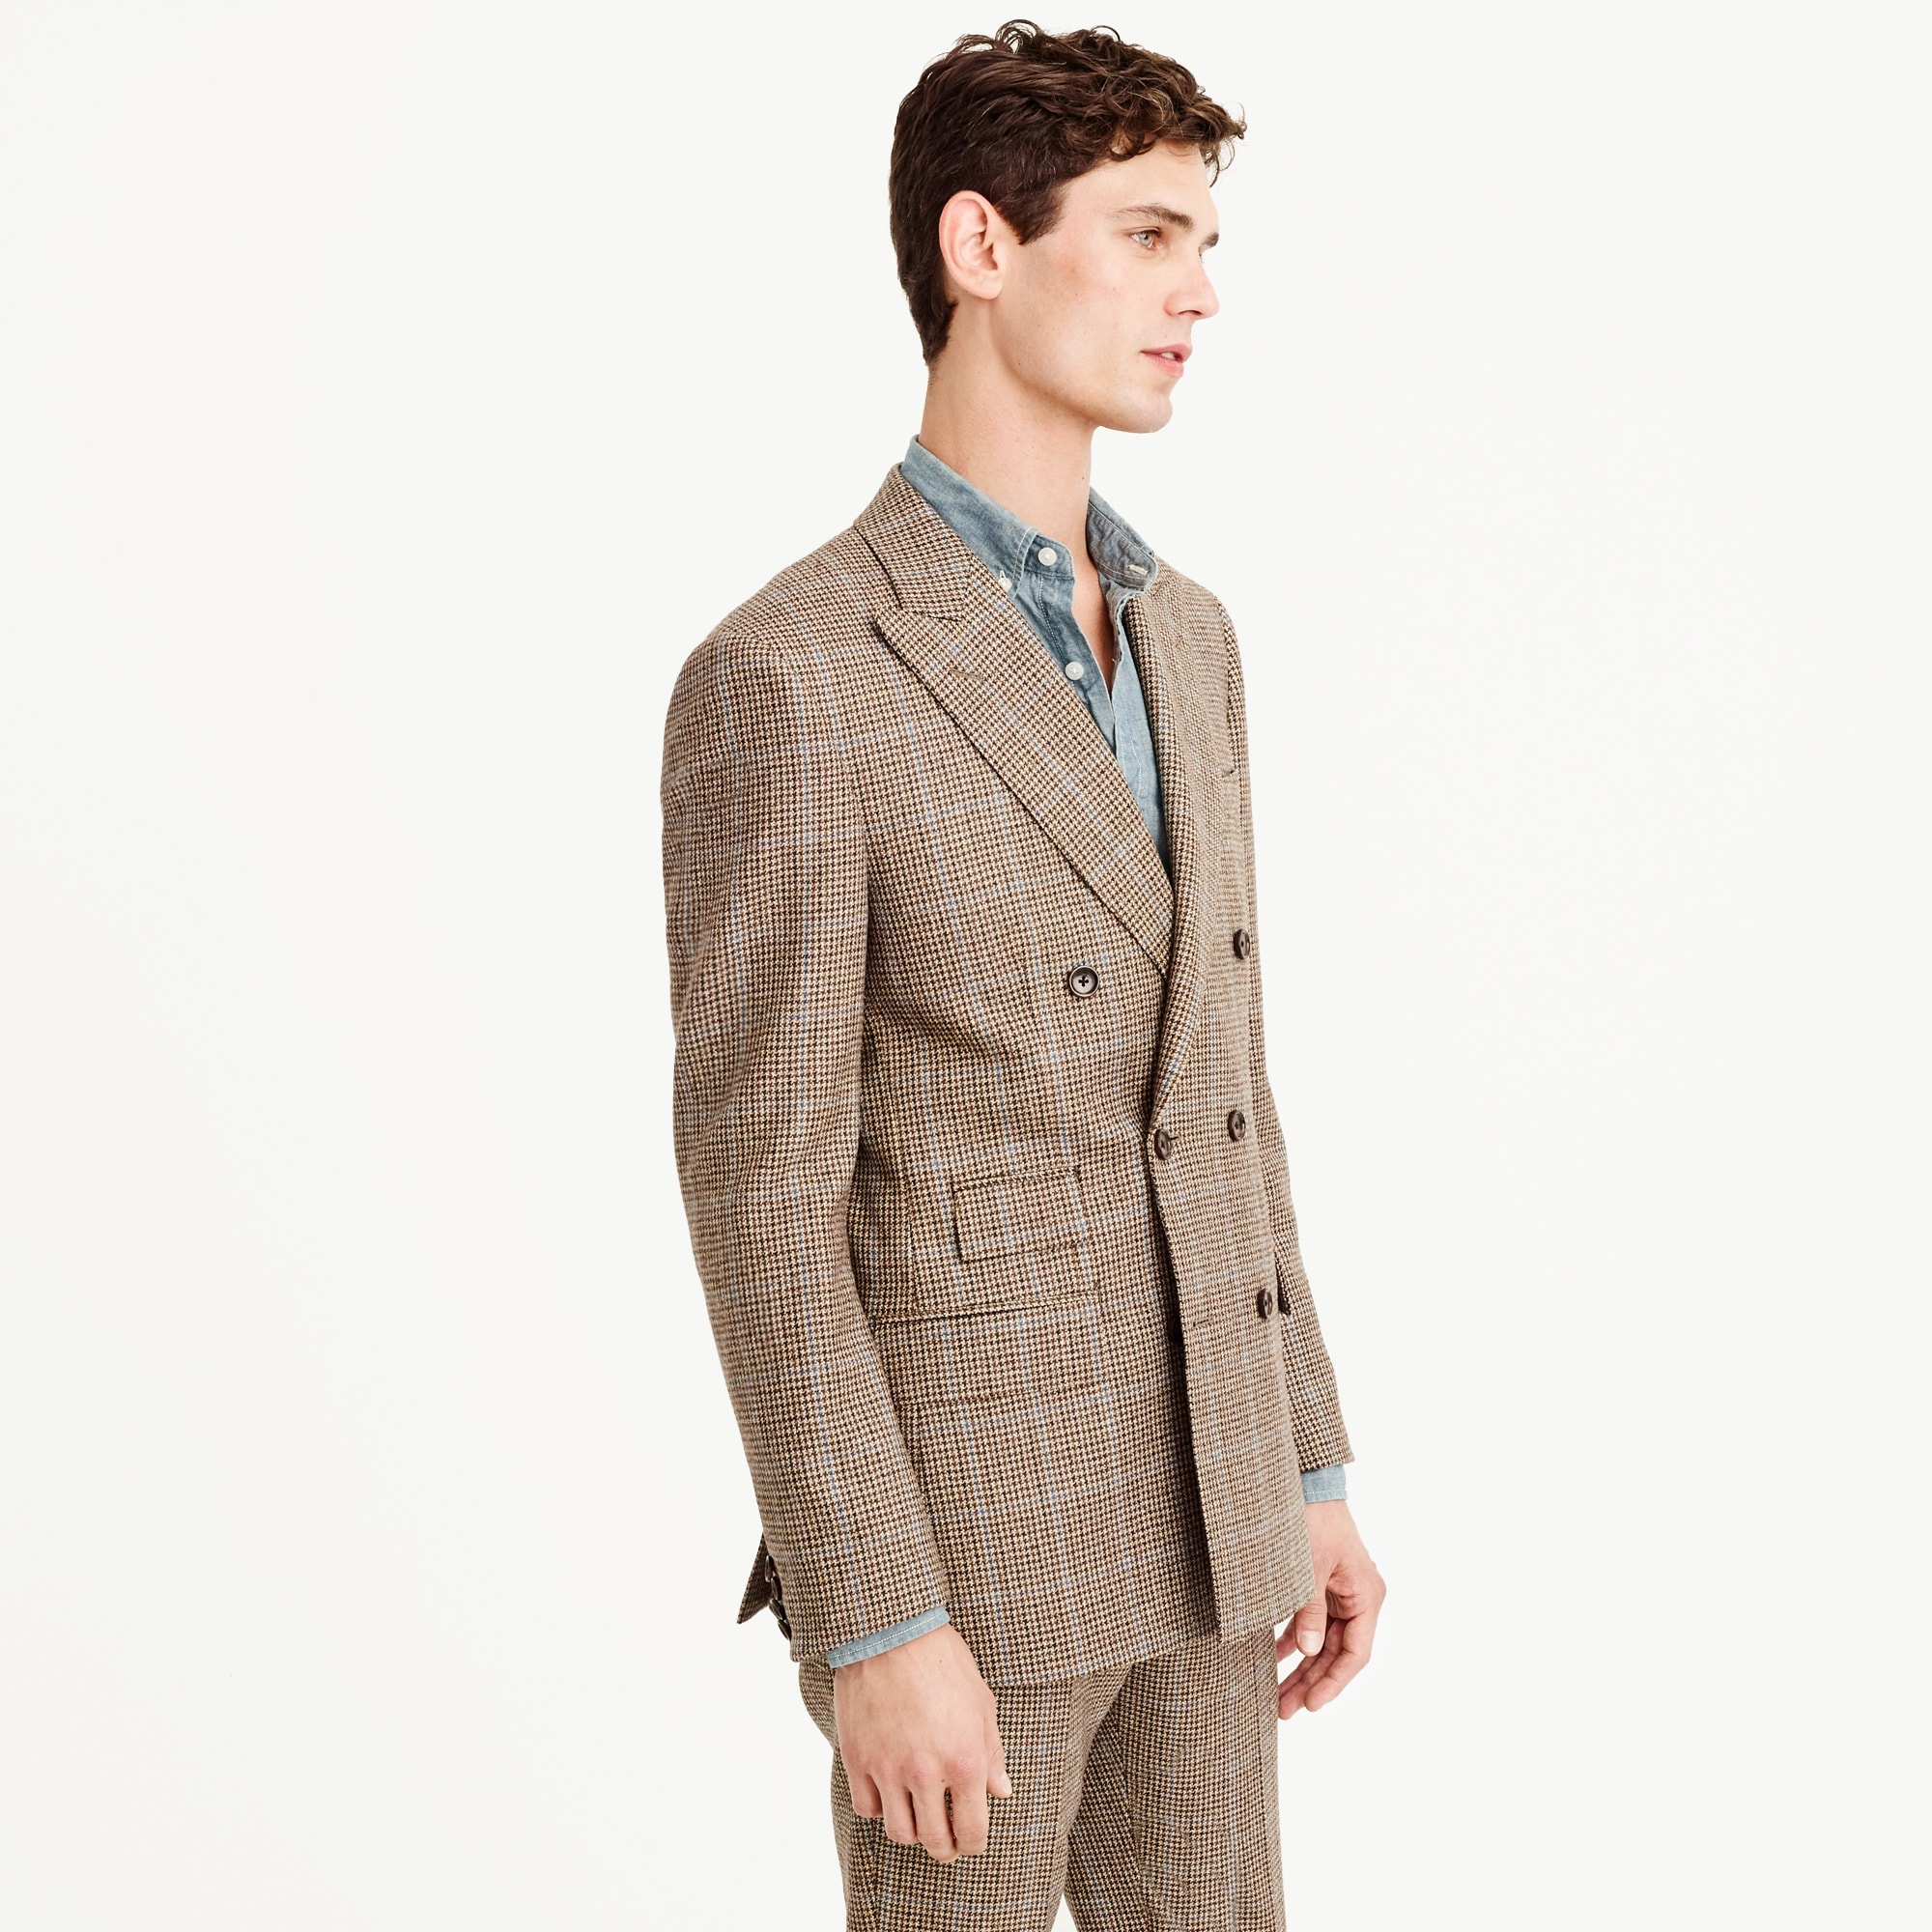 Image 6 for Paul Feig™ for J.Crew peak-lapel suit jacket in check